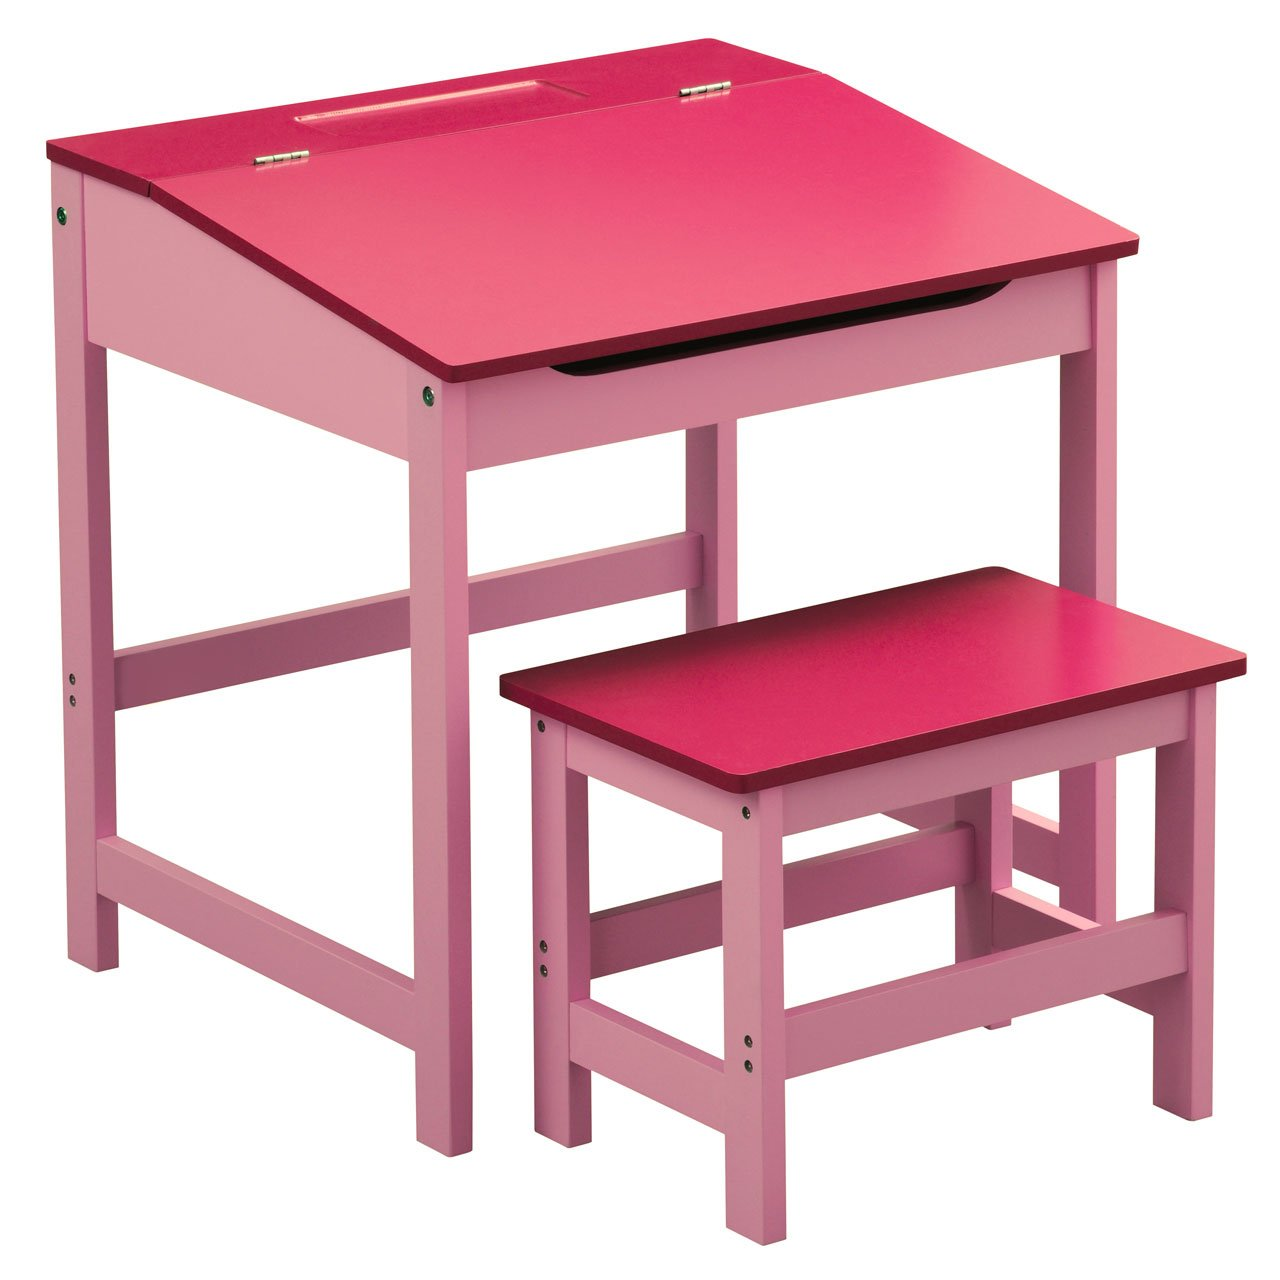 CHILDRENS PINK DESK AND CHAIR SET PRIME FURNISHING